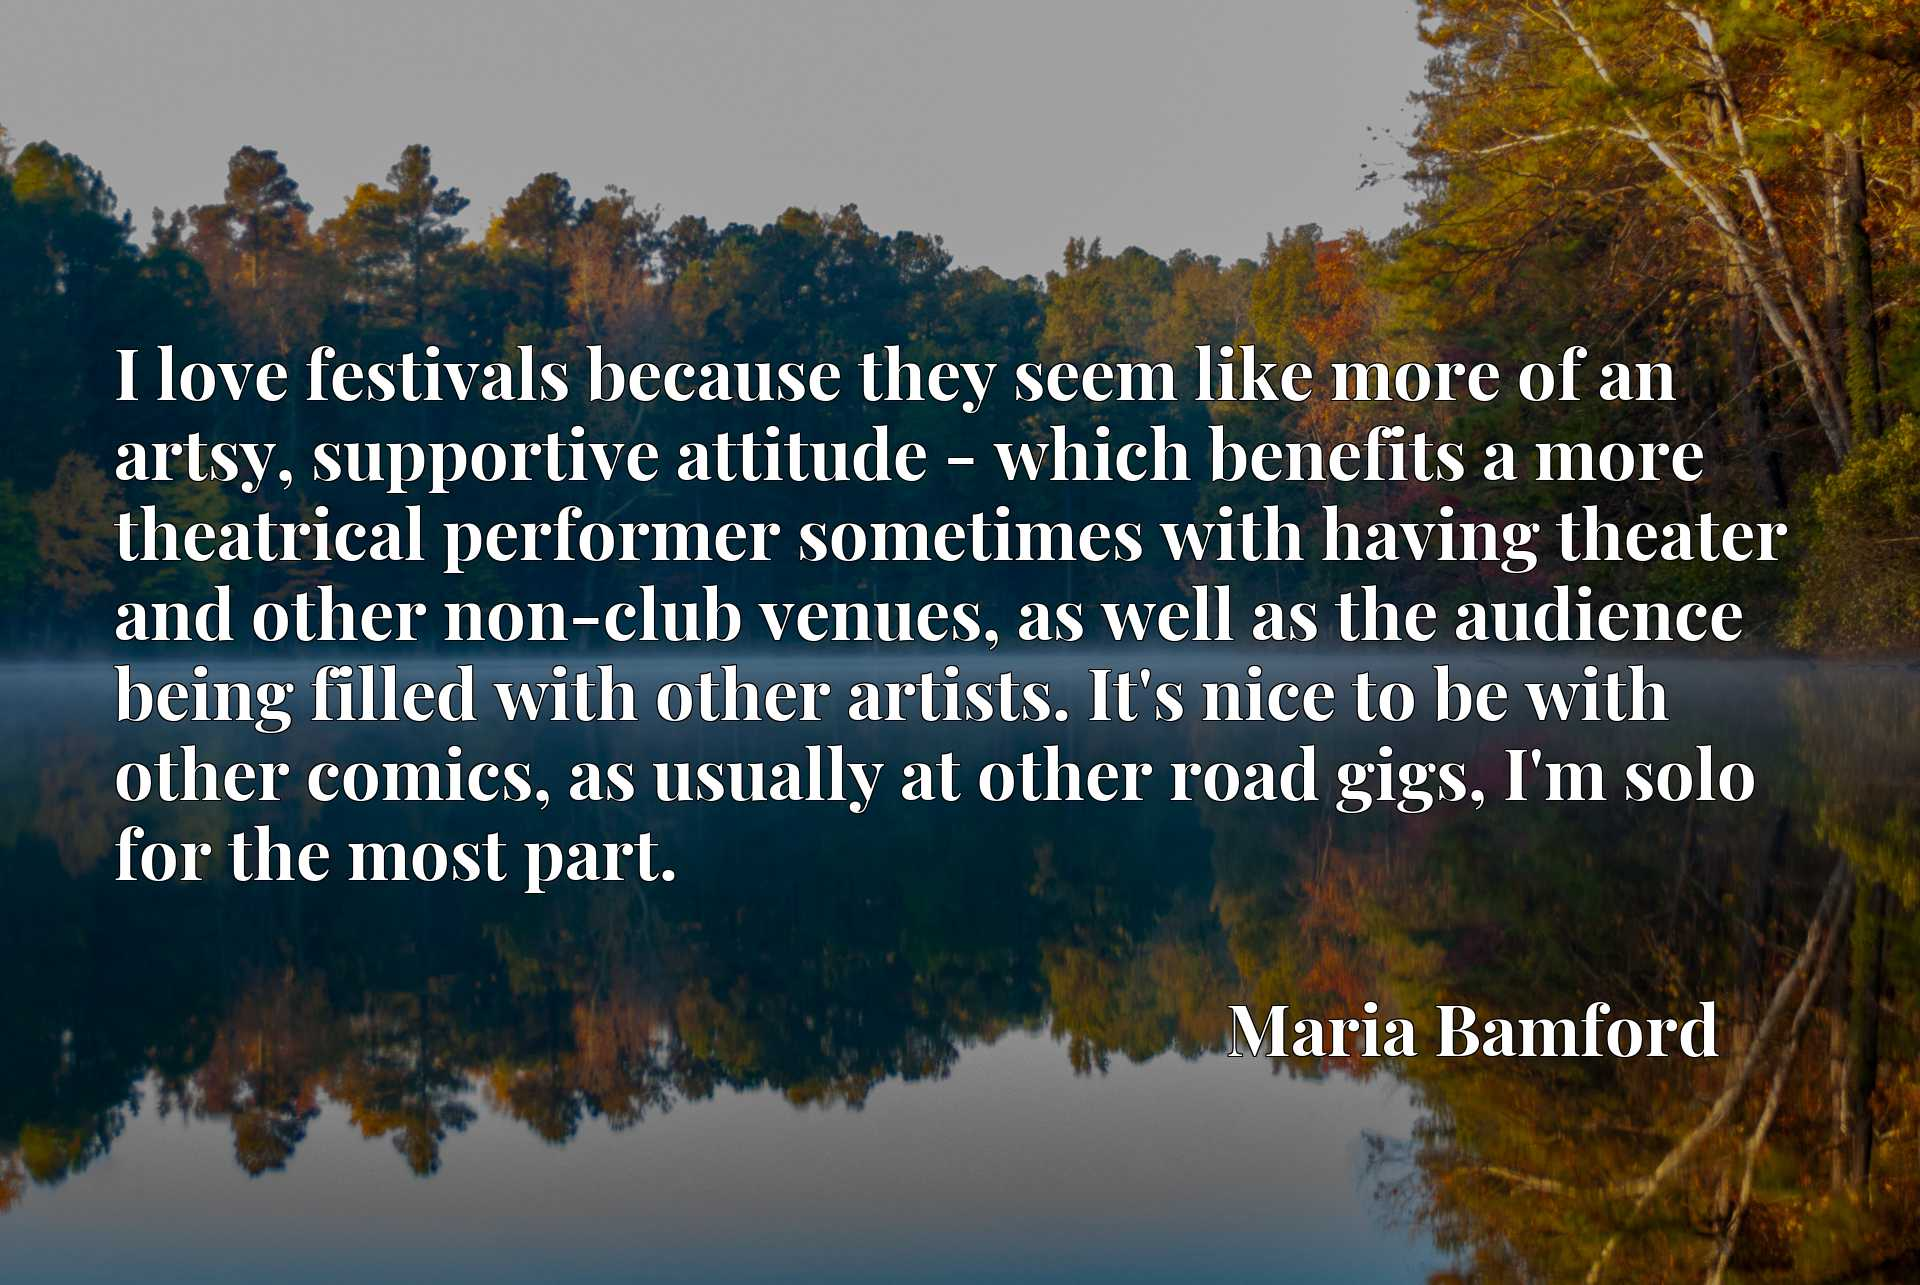 I love festivals because they seem like more of an artsy, supportive attitude - which benefits a more theatrical performer sometimes with having theater and other non-club venues, as well as the audience being filled with other artists. It's nice to be with other comics, as usually at other road gigs, I'm solo for the most part.